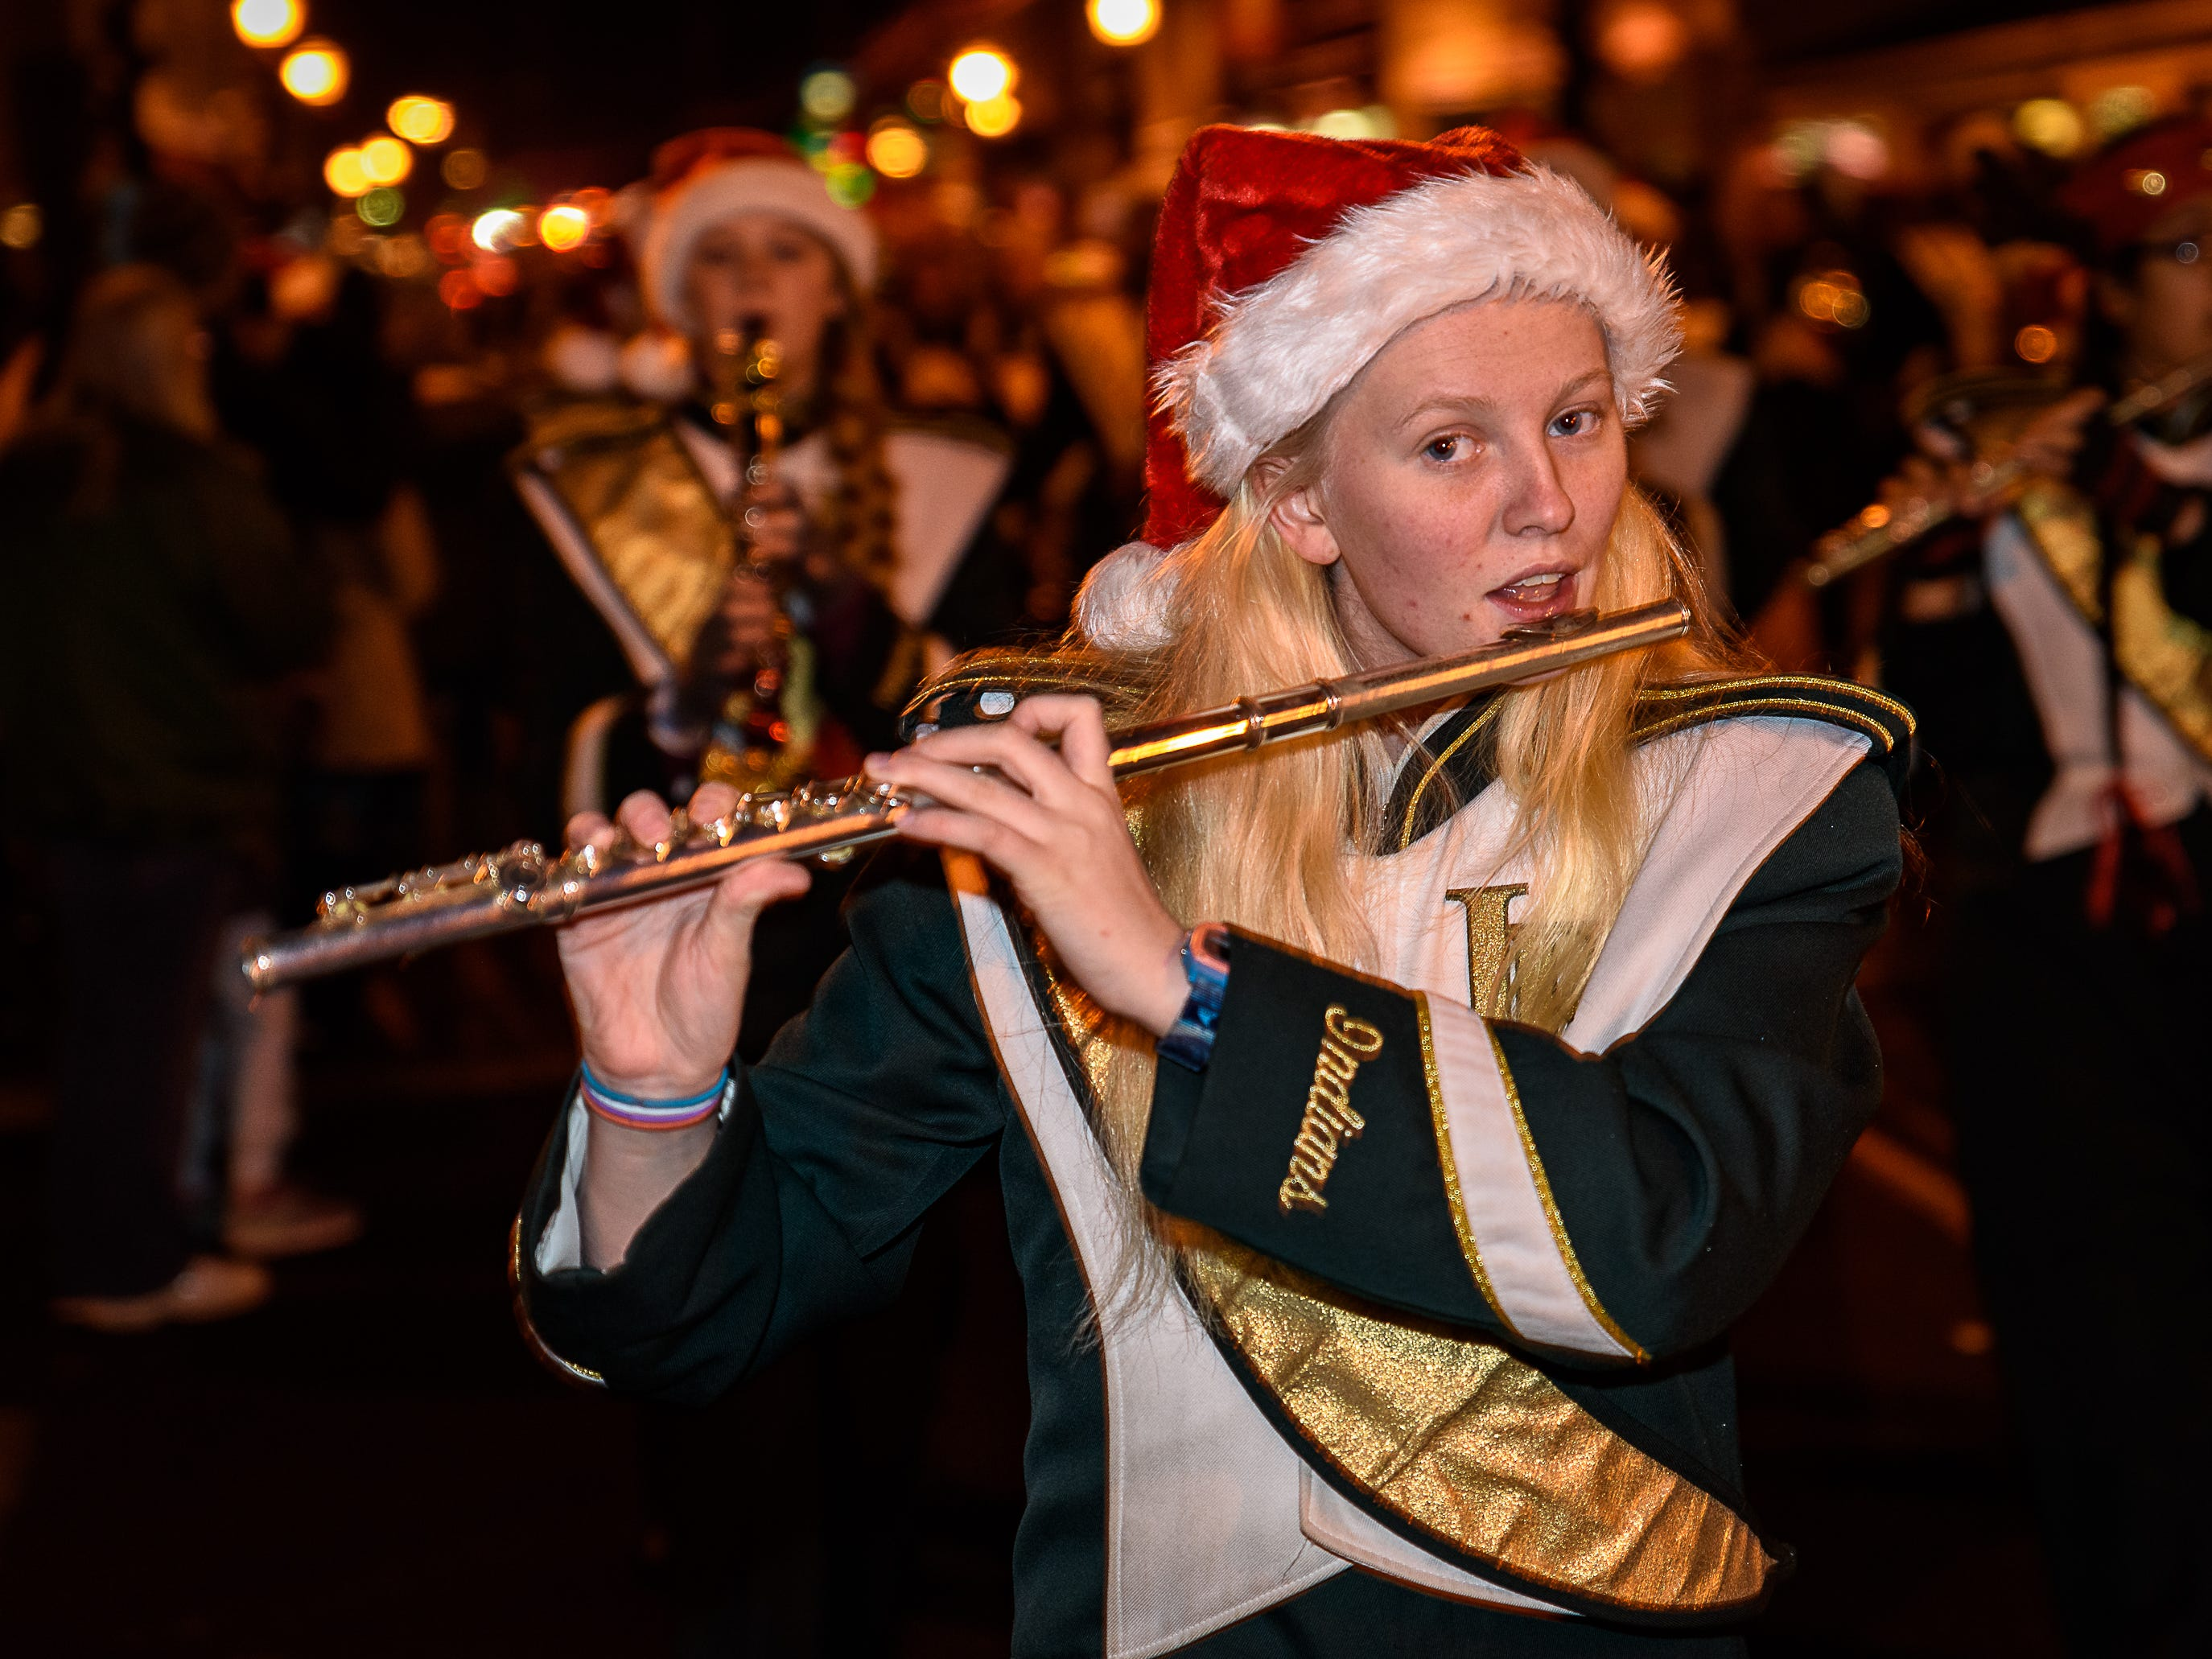 A flute player from the Indian River High School marching band from Delaware performs at the Chincoteague Christmas parade.